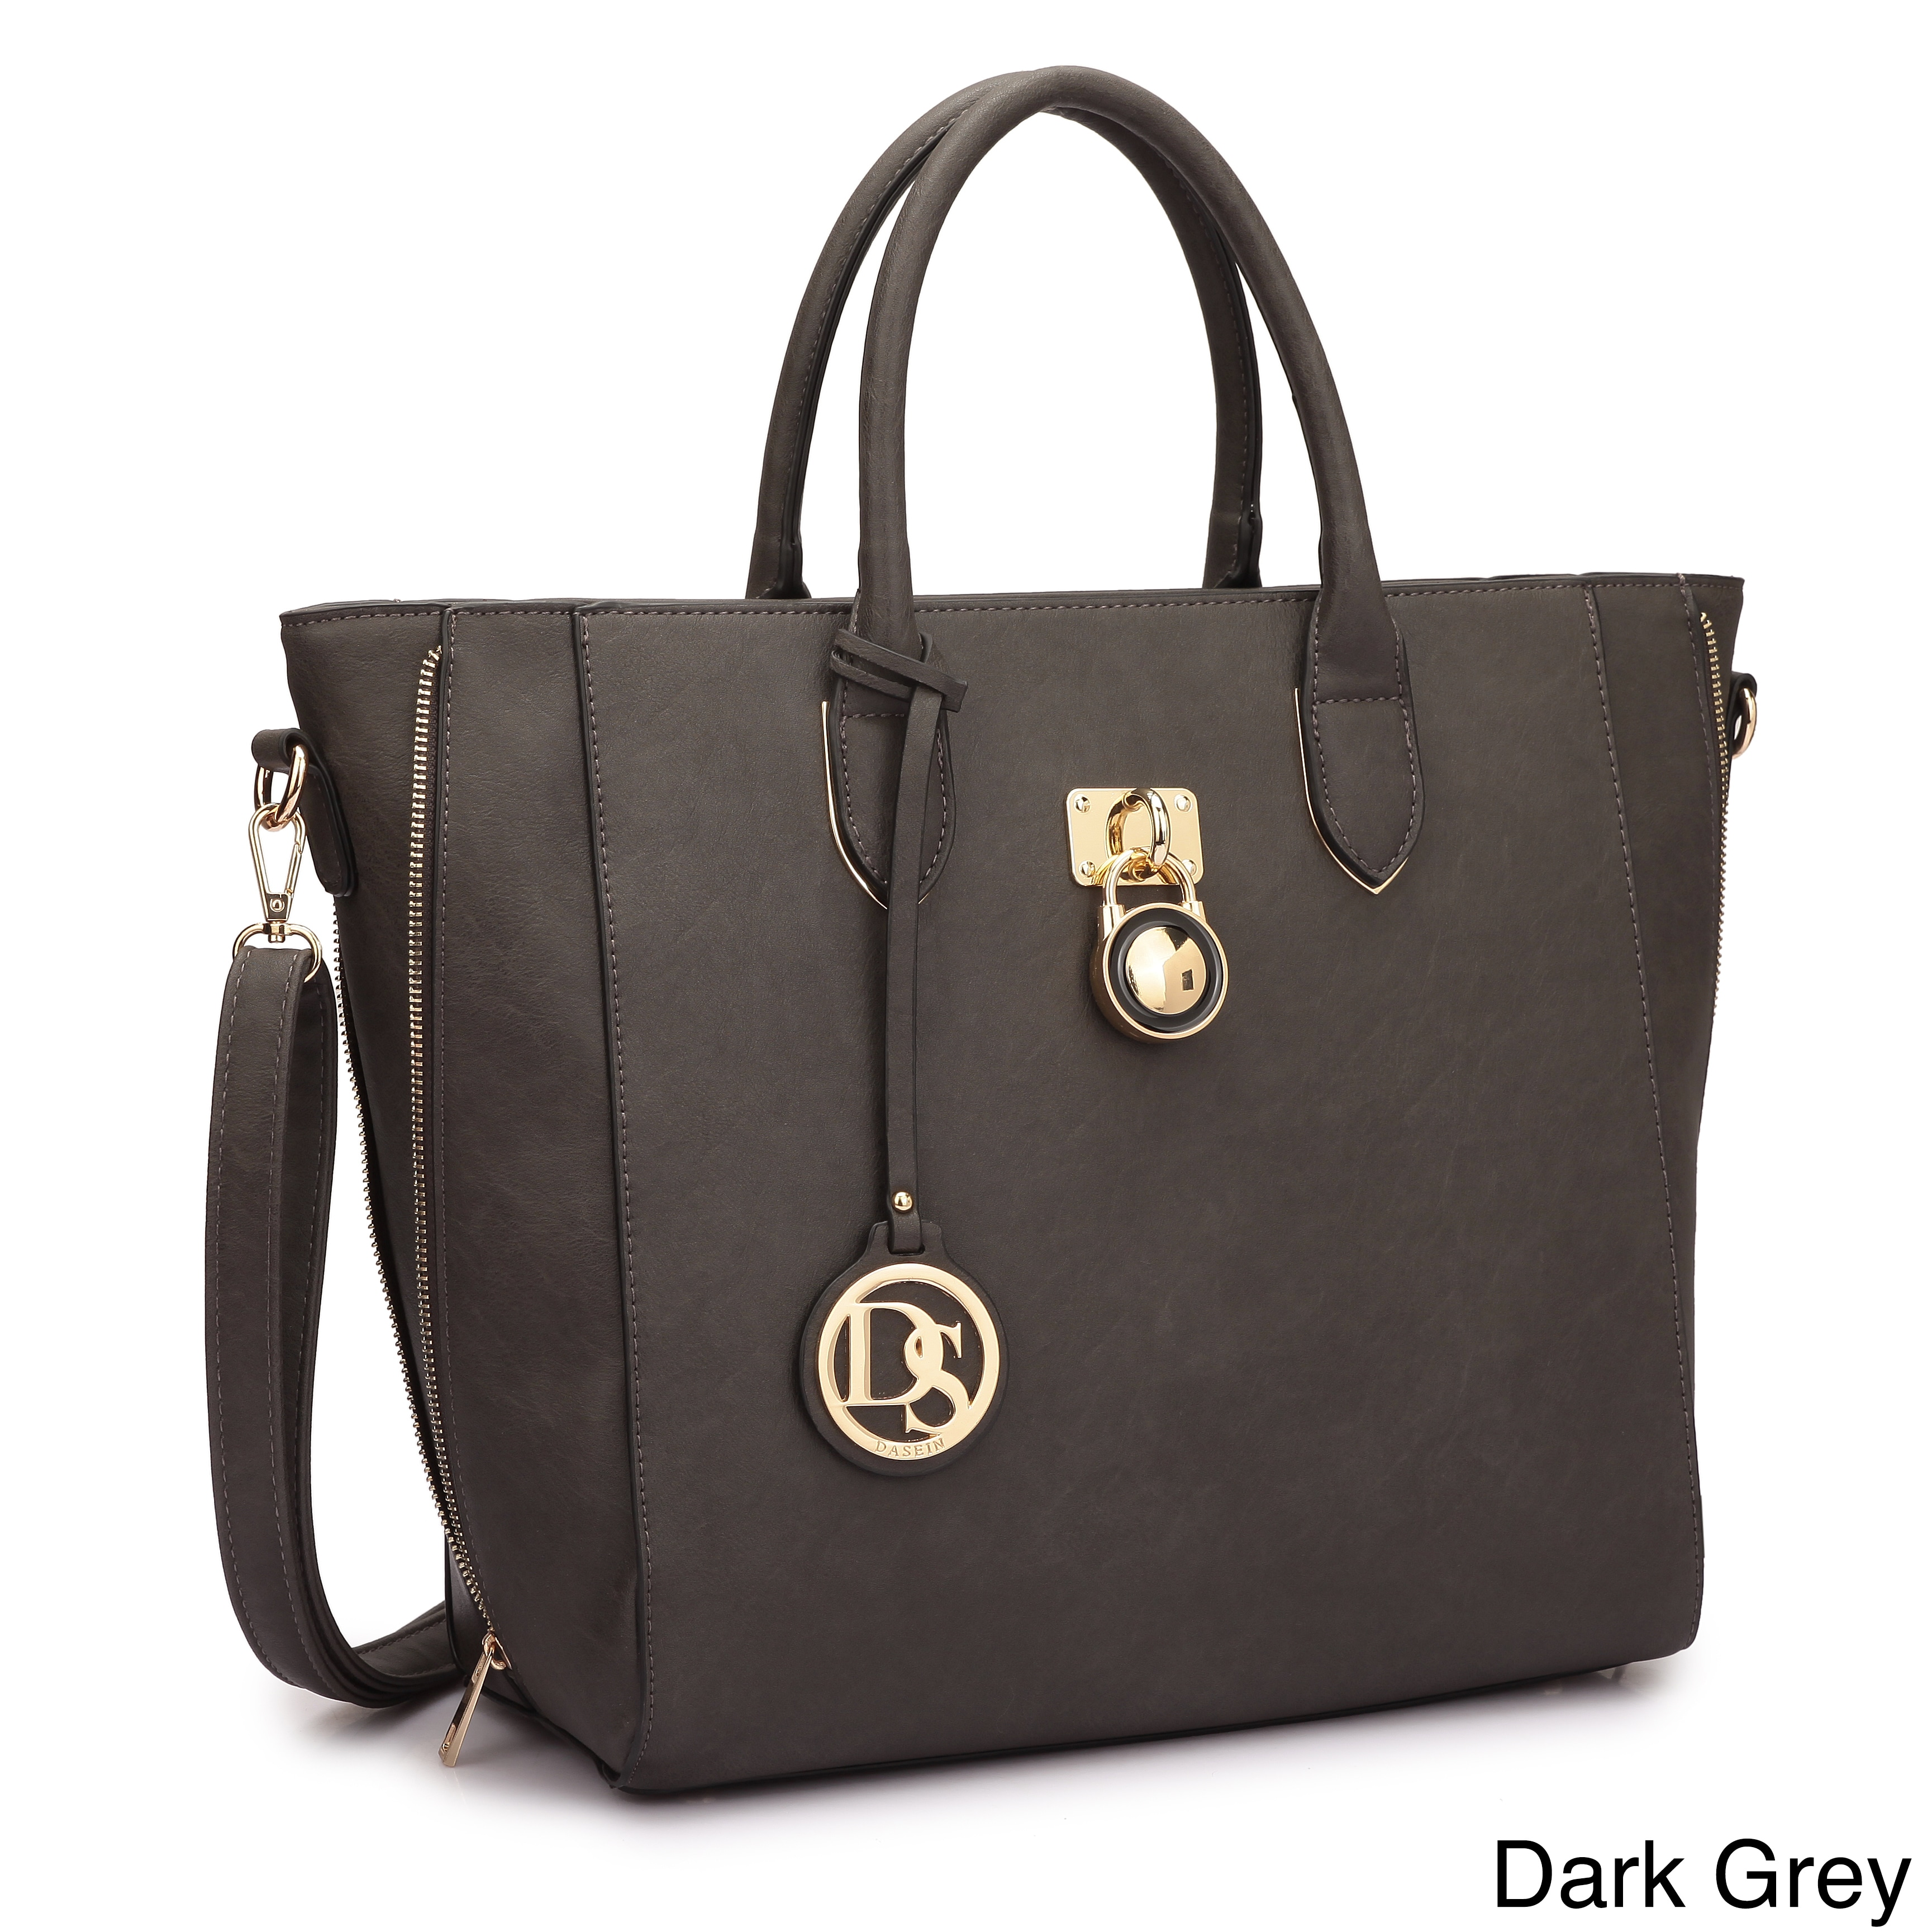 Grey Tote Bags Online At Our Best By Style Deals